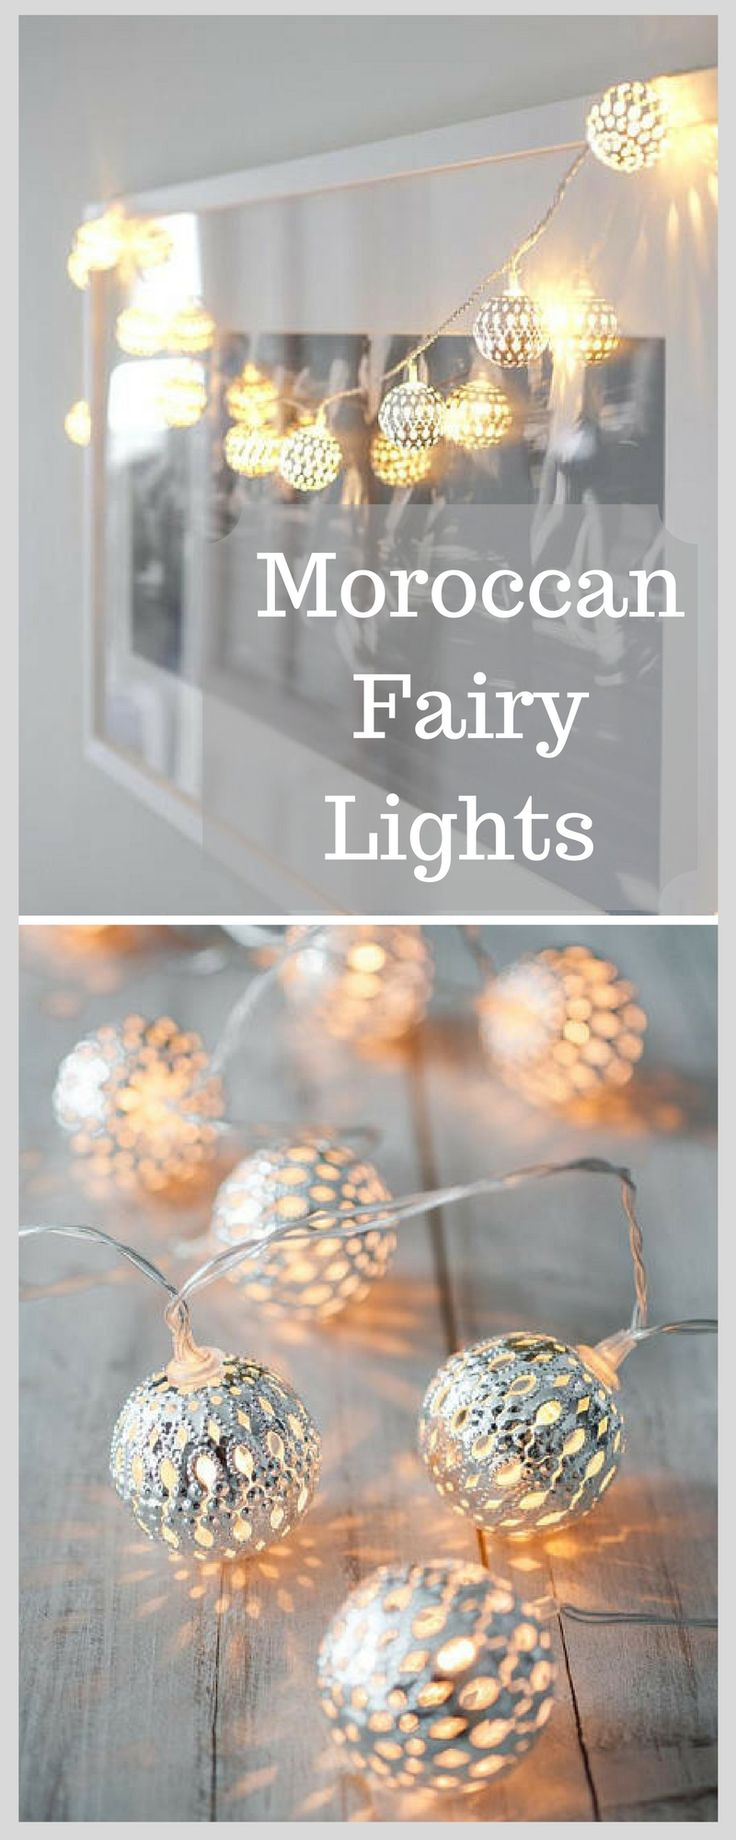 These moroccan fairy style fairy lights. They are perfect for a wedding decor or a room. #fairylights #moroccan #roomdecor #homedecor #ad #shopstyle